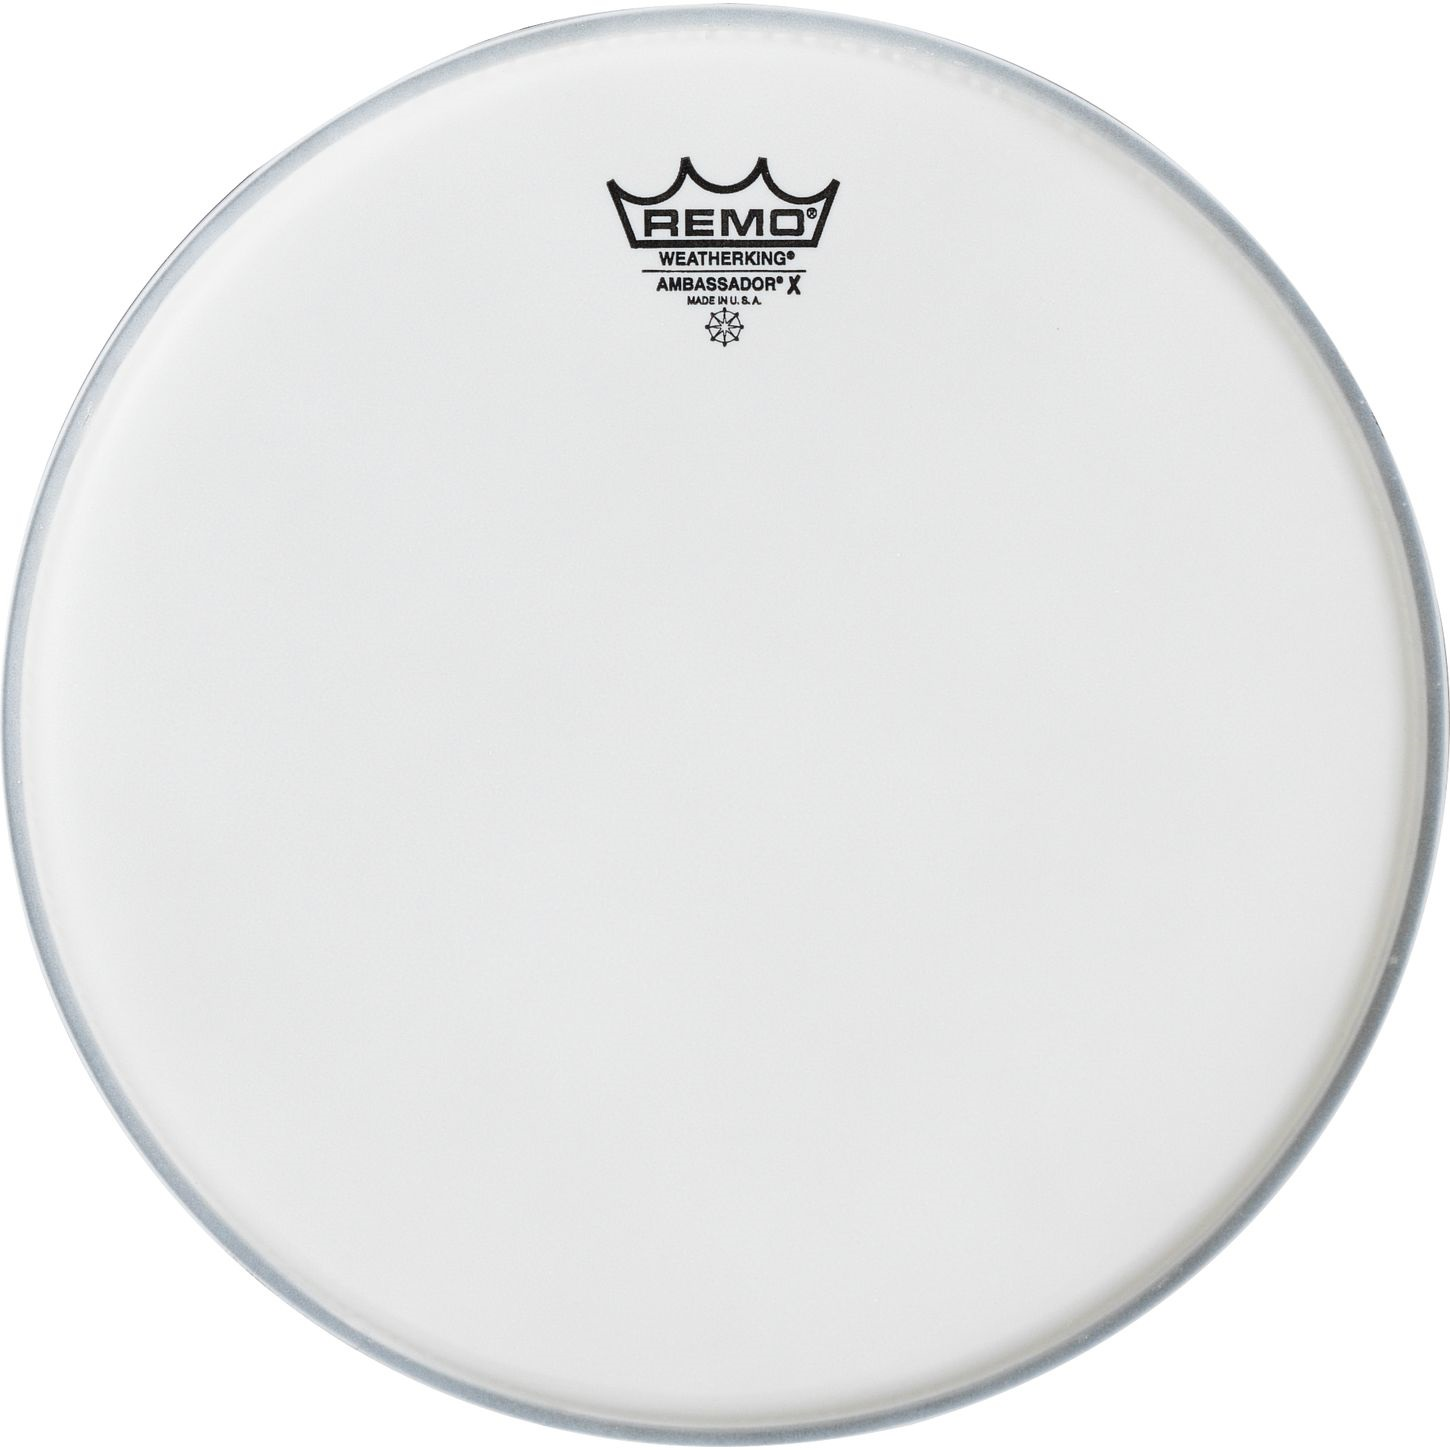 "Remo 16"" Ambassador X Coated"